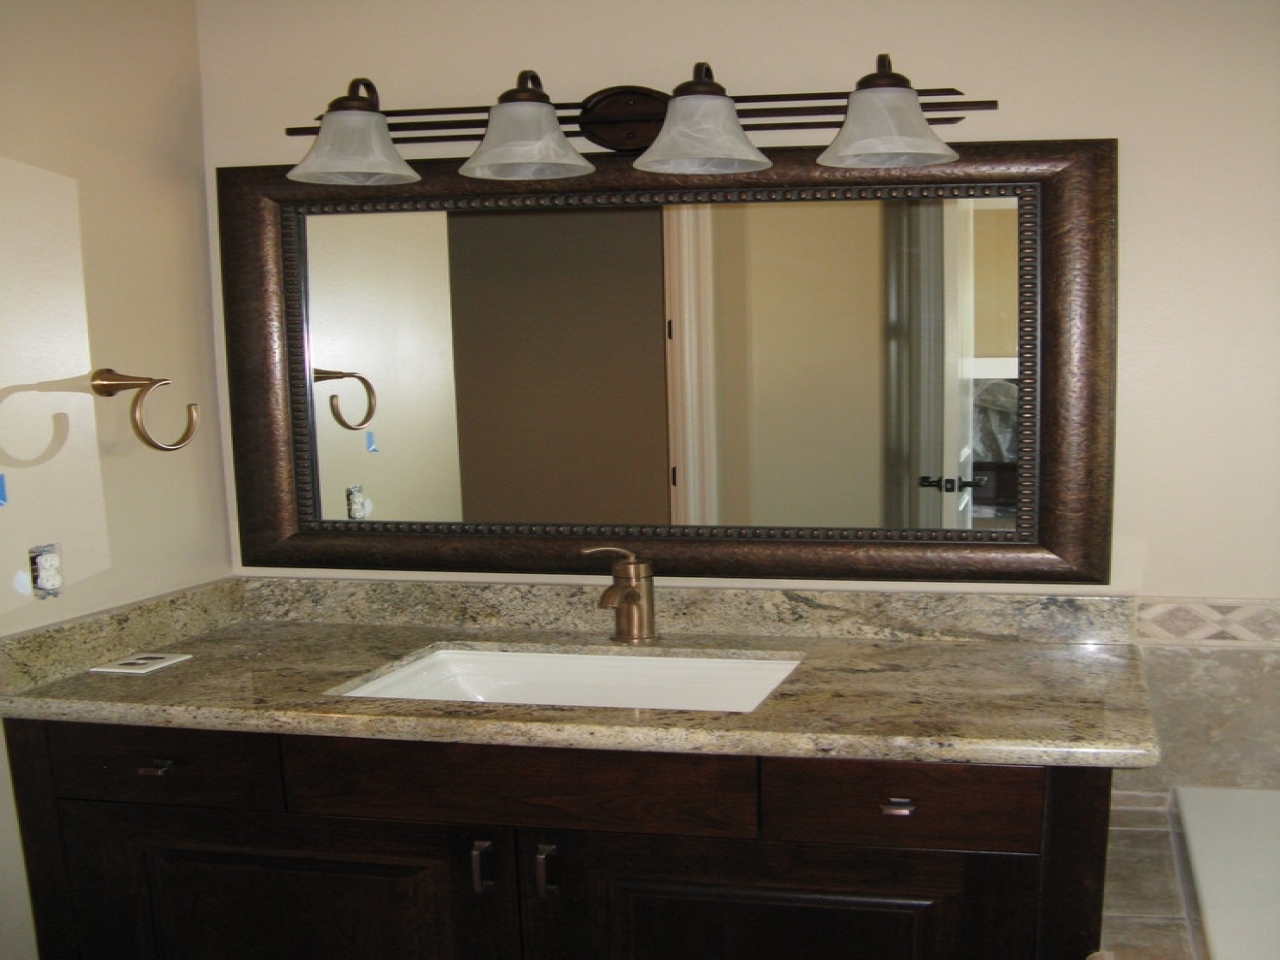 types of vanity mirrors. Black Bedroom Furniture Sets. Home Design Ideas